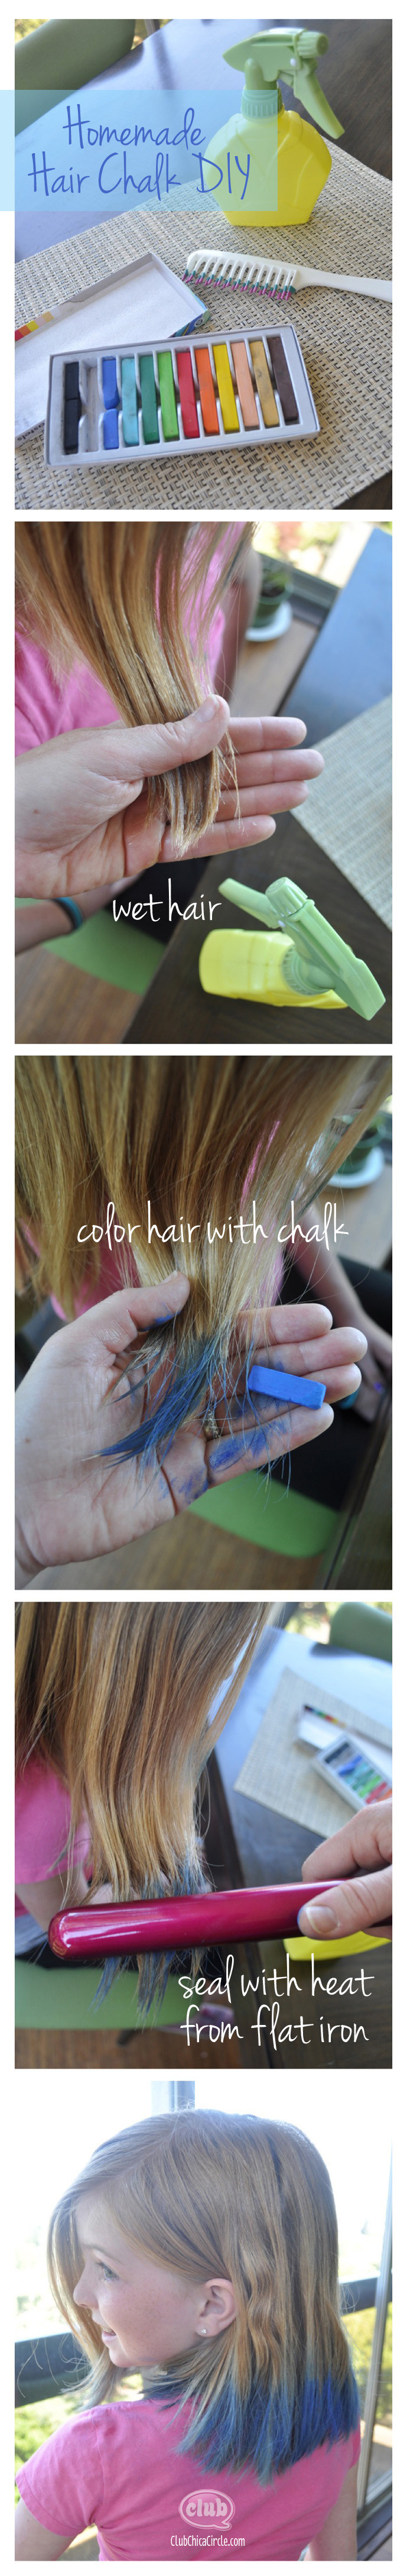 Best ideas about DIY Hair Chalking . Save or Pin Homemade Hair Chalk Tutorial for Tweens Now.